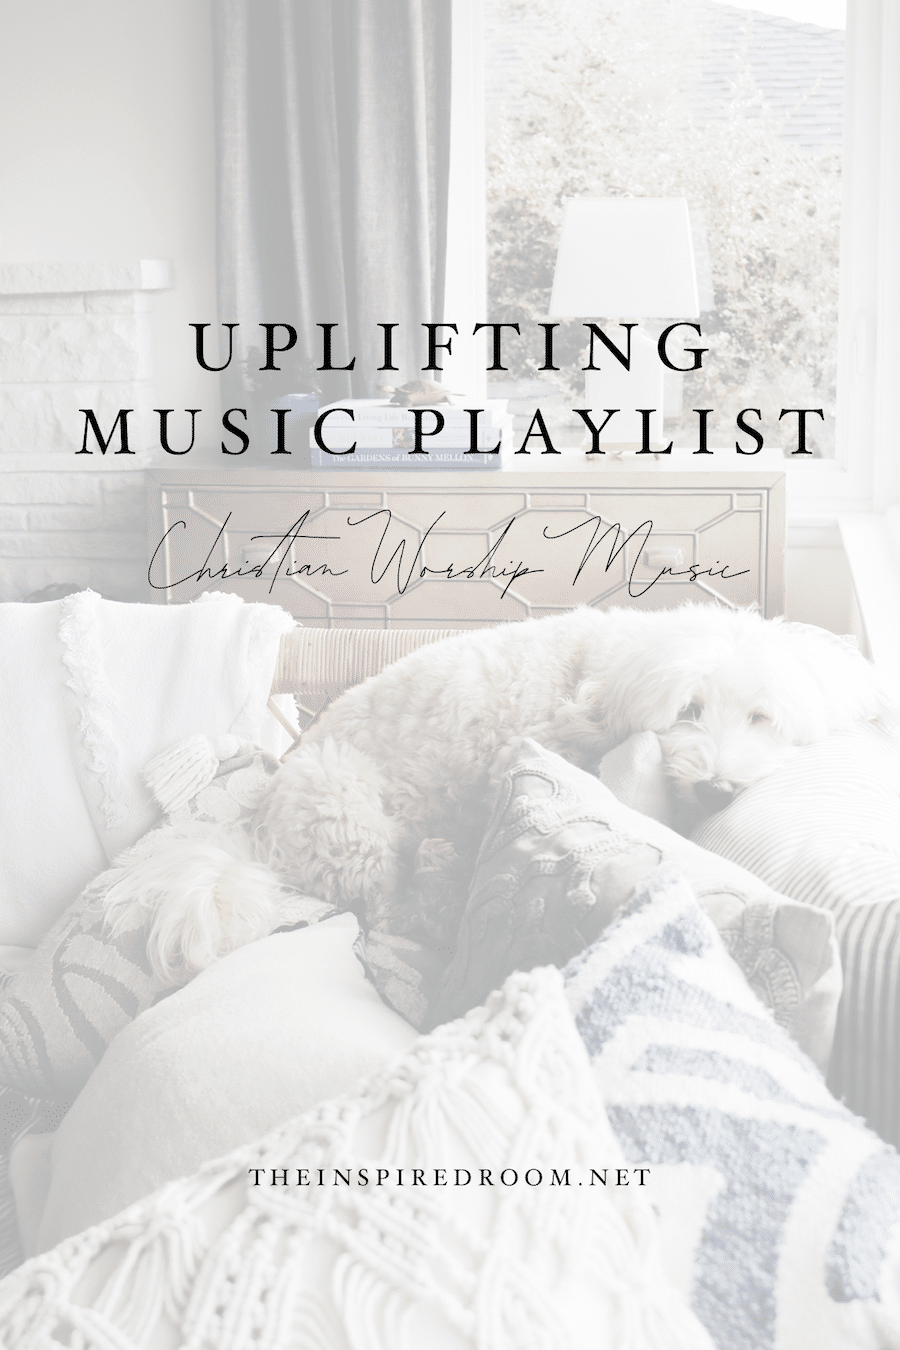 Uplifting Music Playlist - Christian Worship